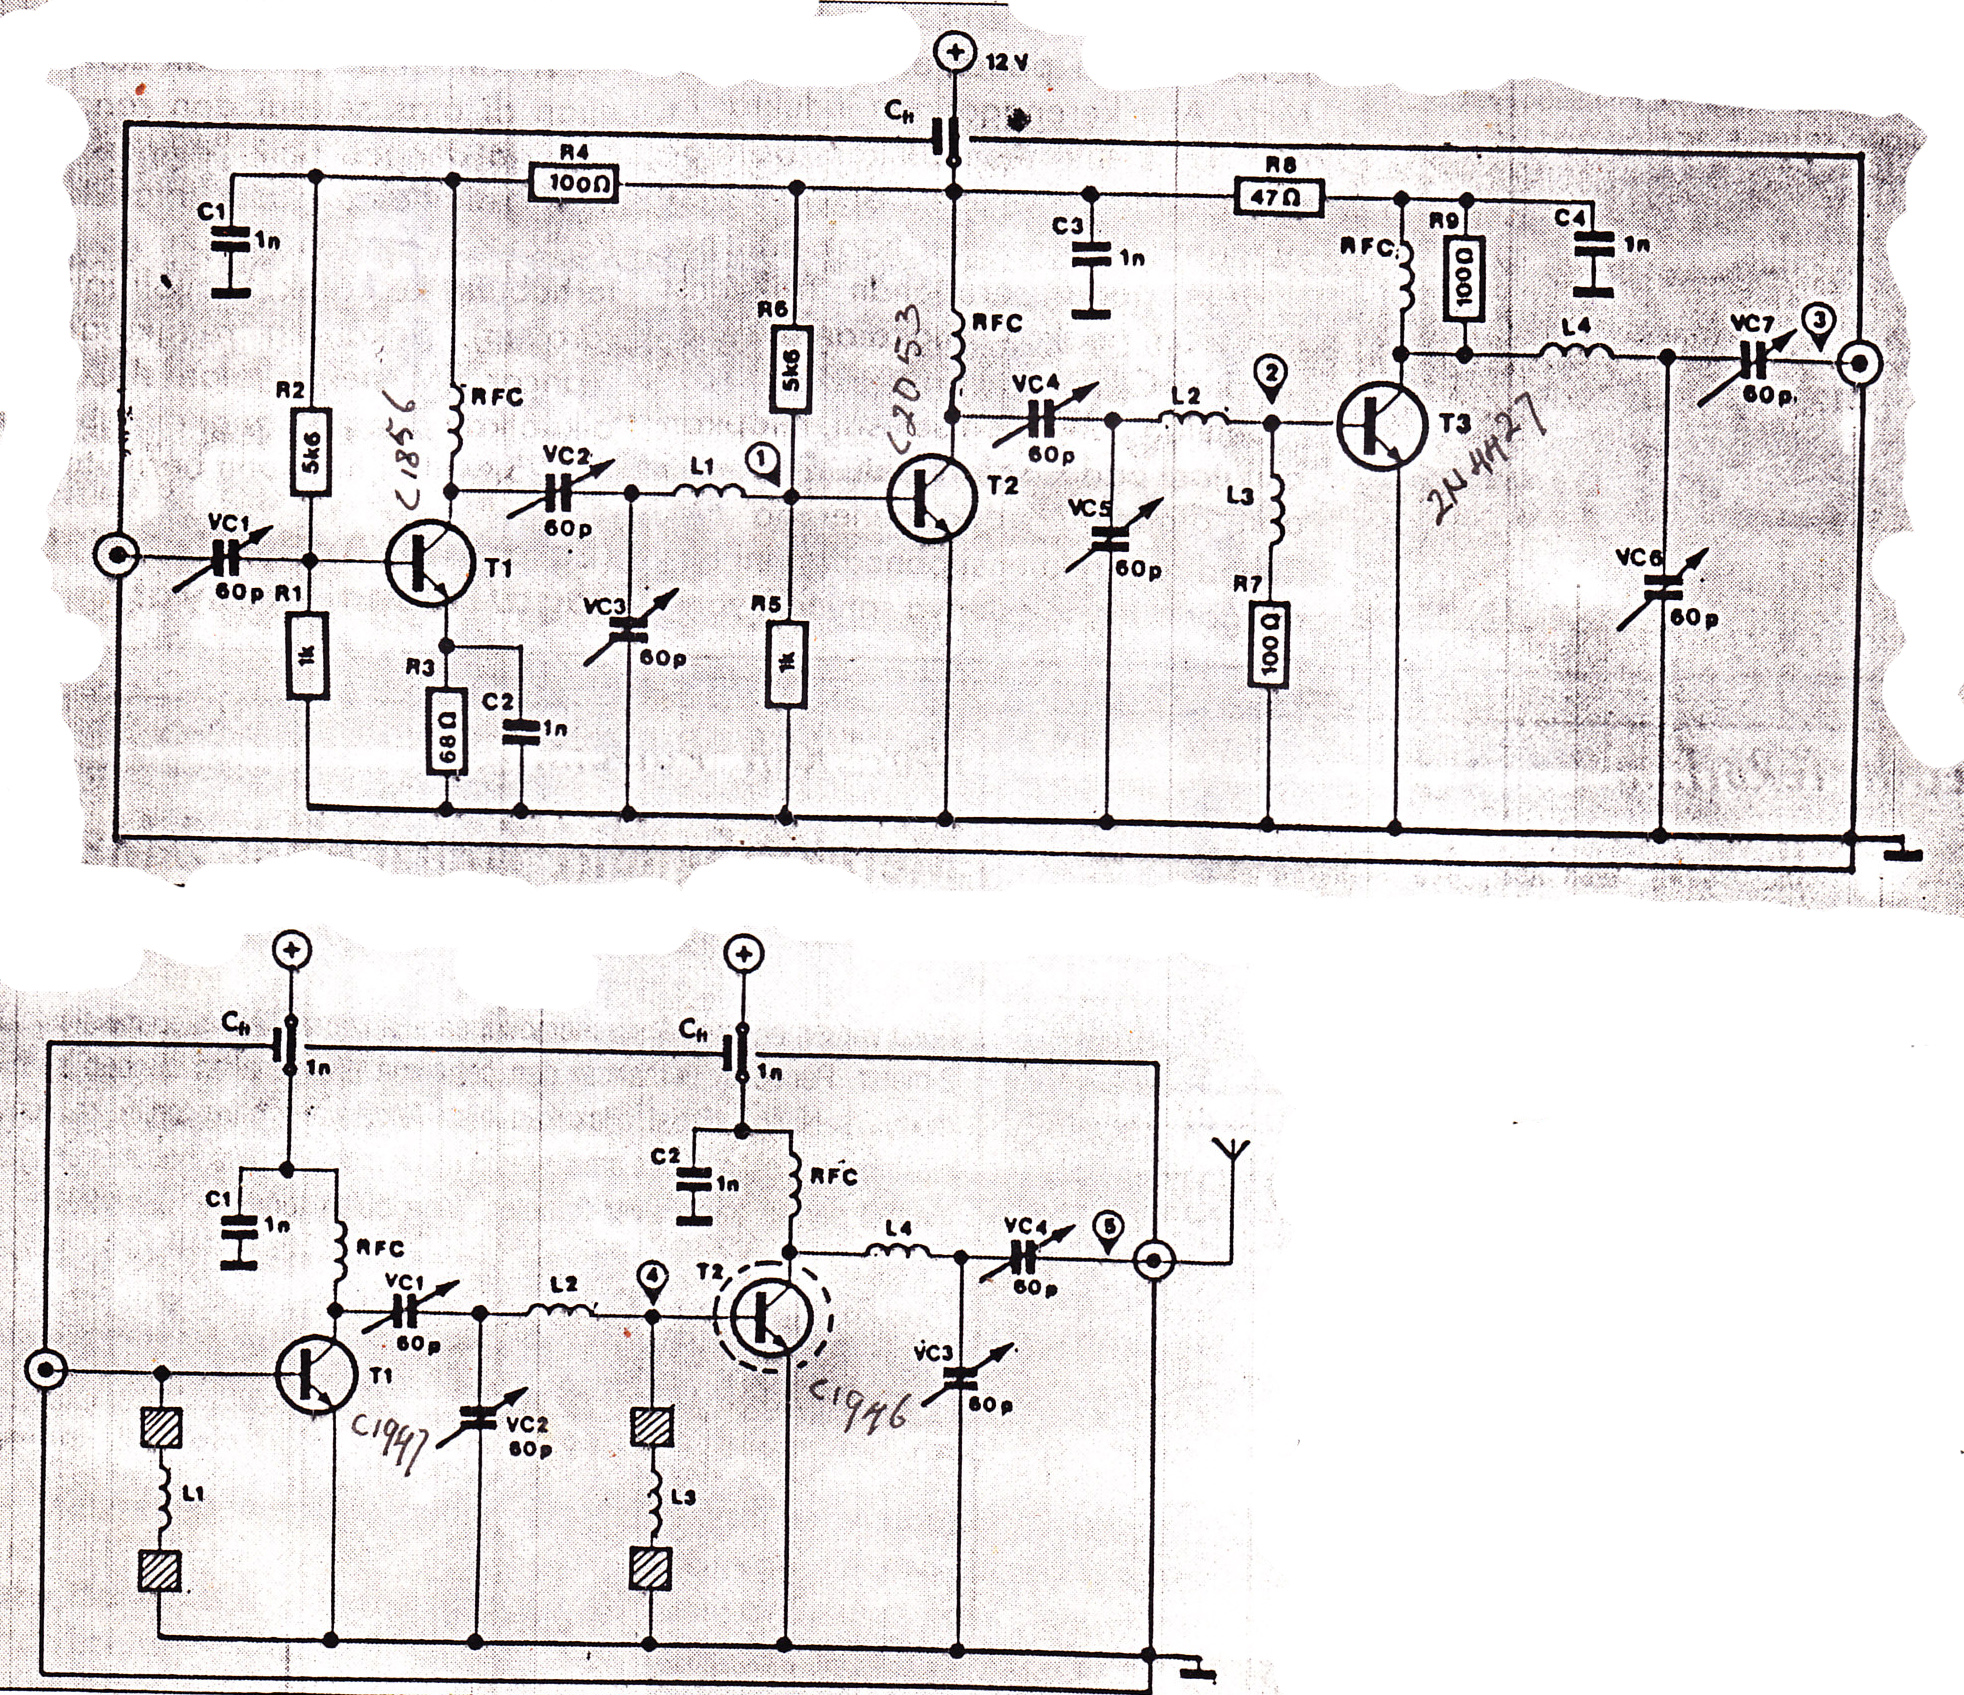 25w Fm Booster Transmitter Electronic Circuit Diagram And Layout F M